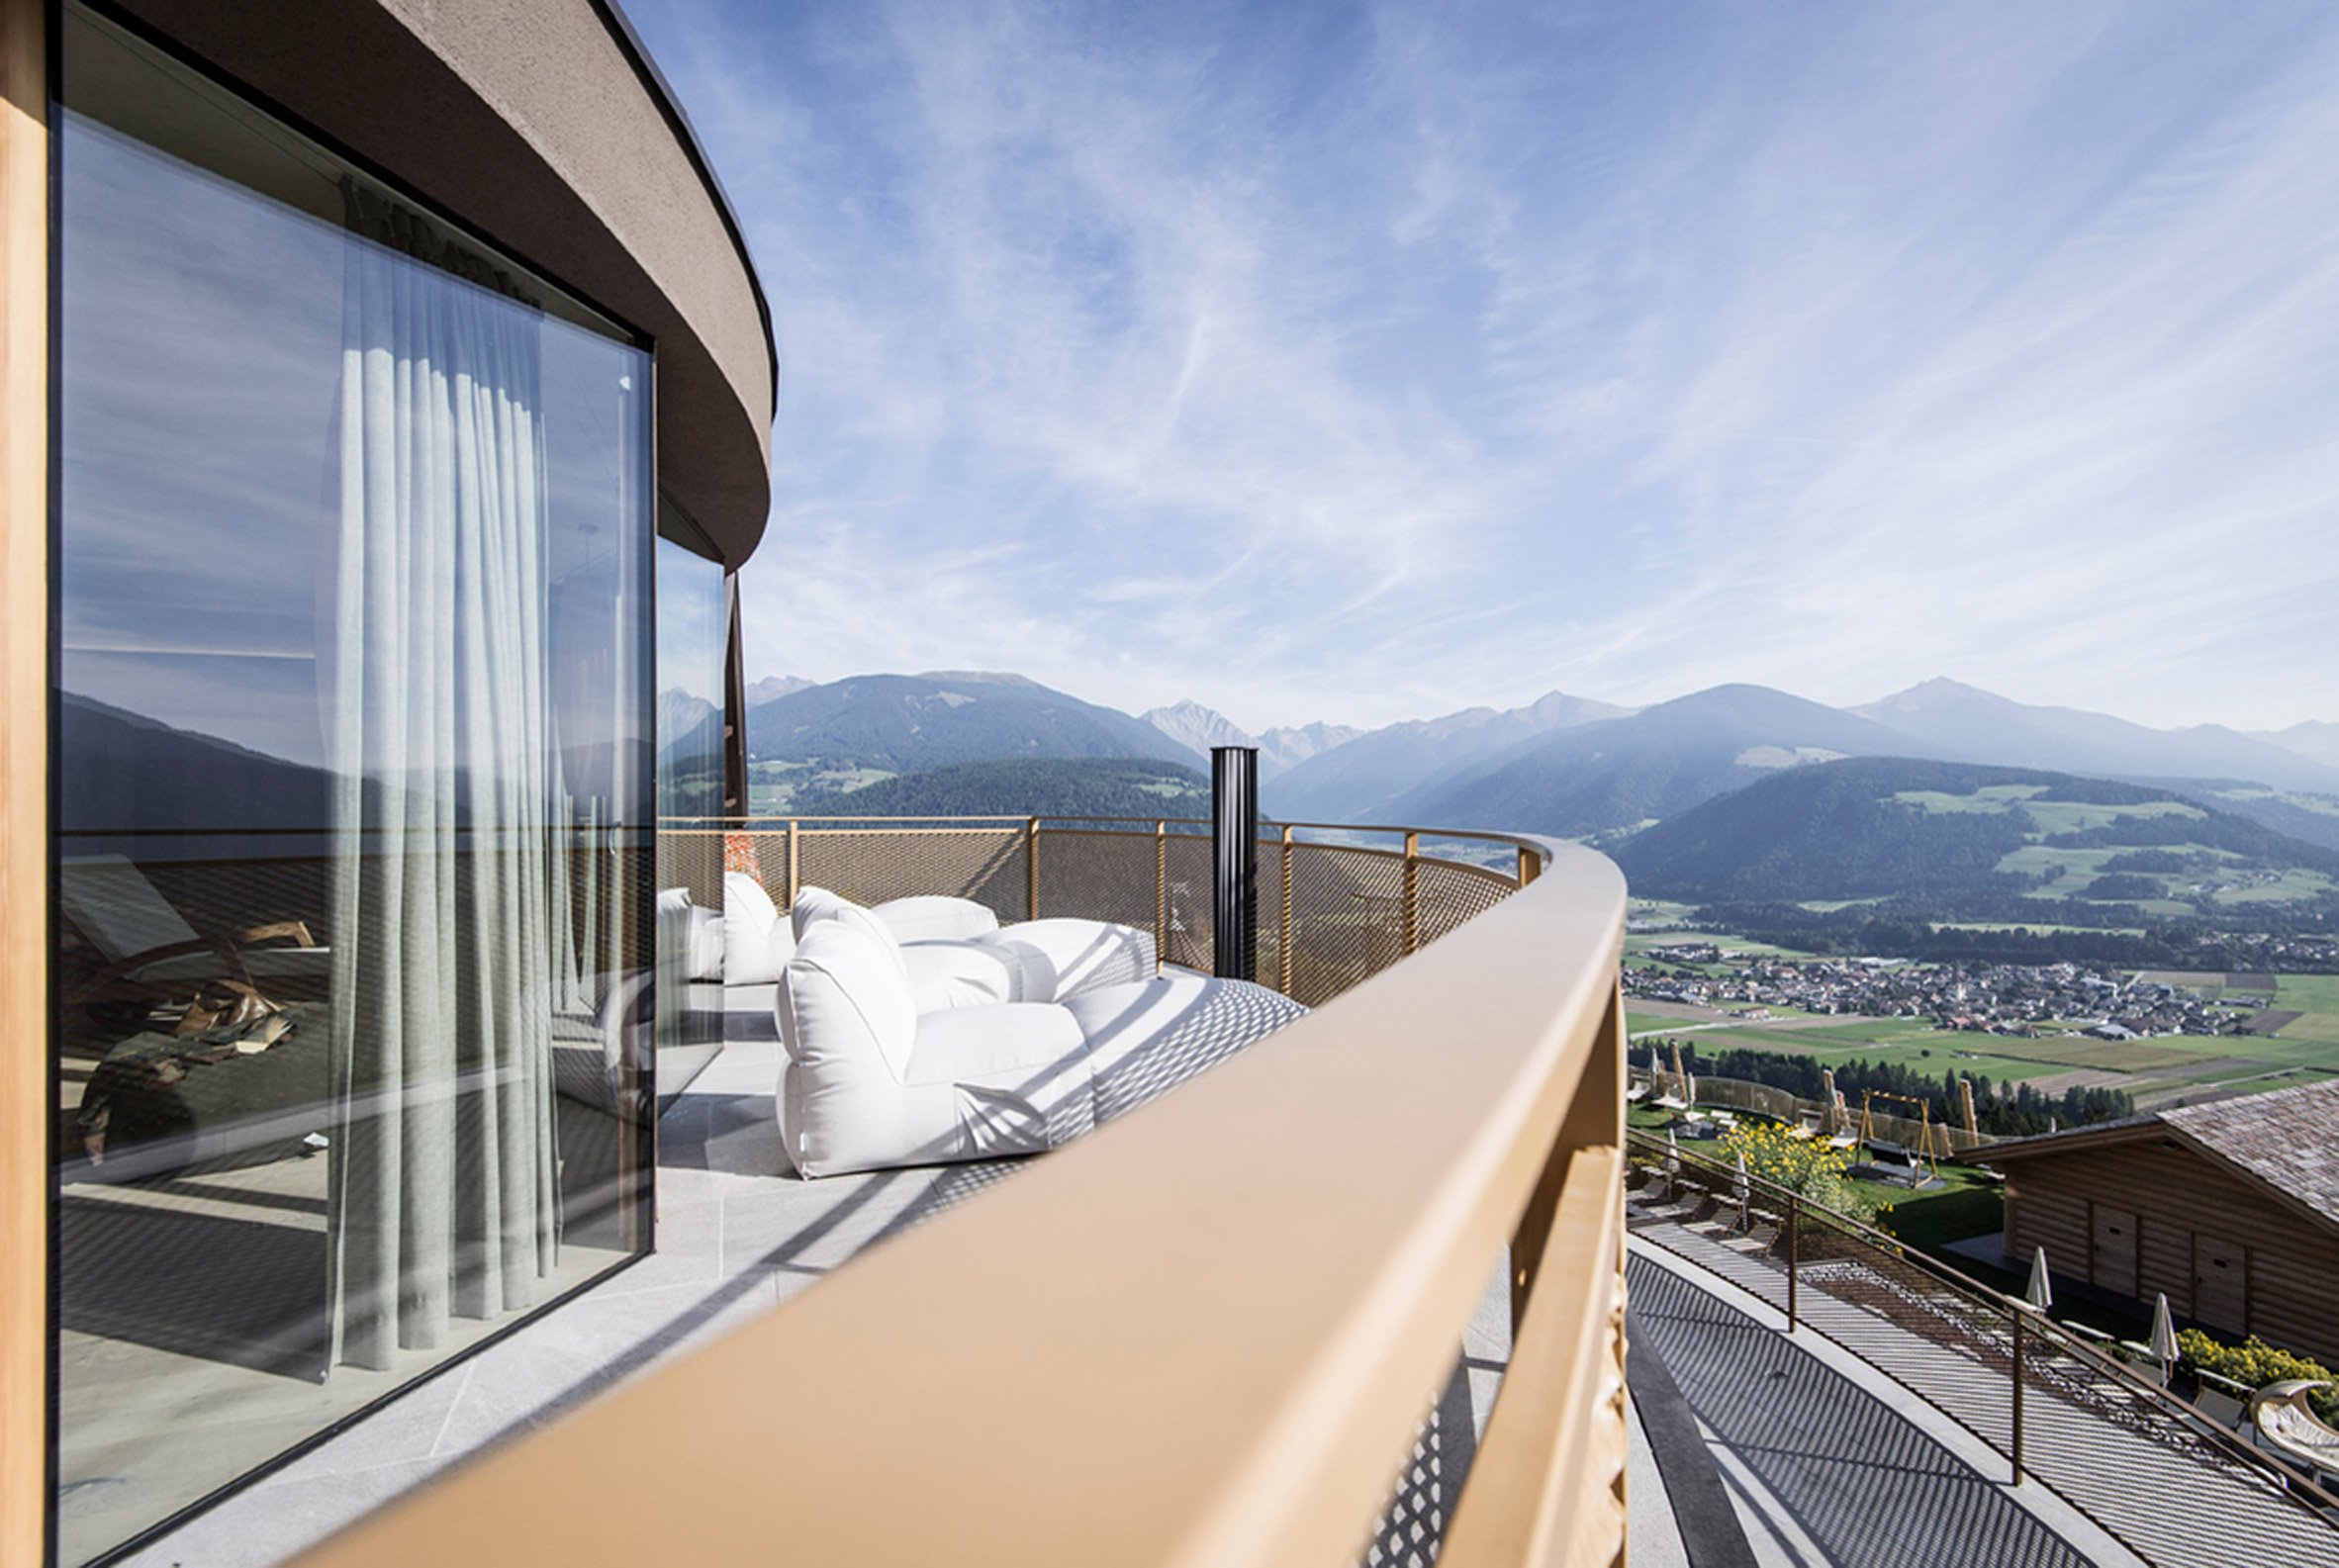 Alpin Panorama Hotel of italy